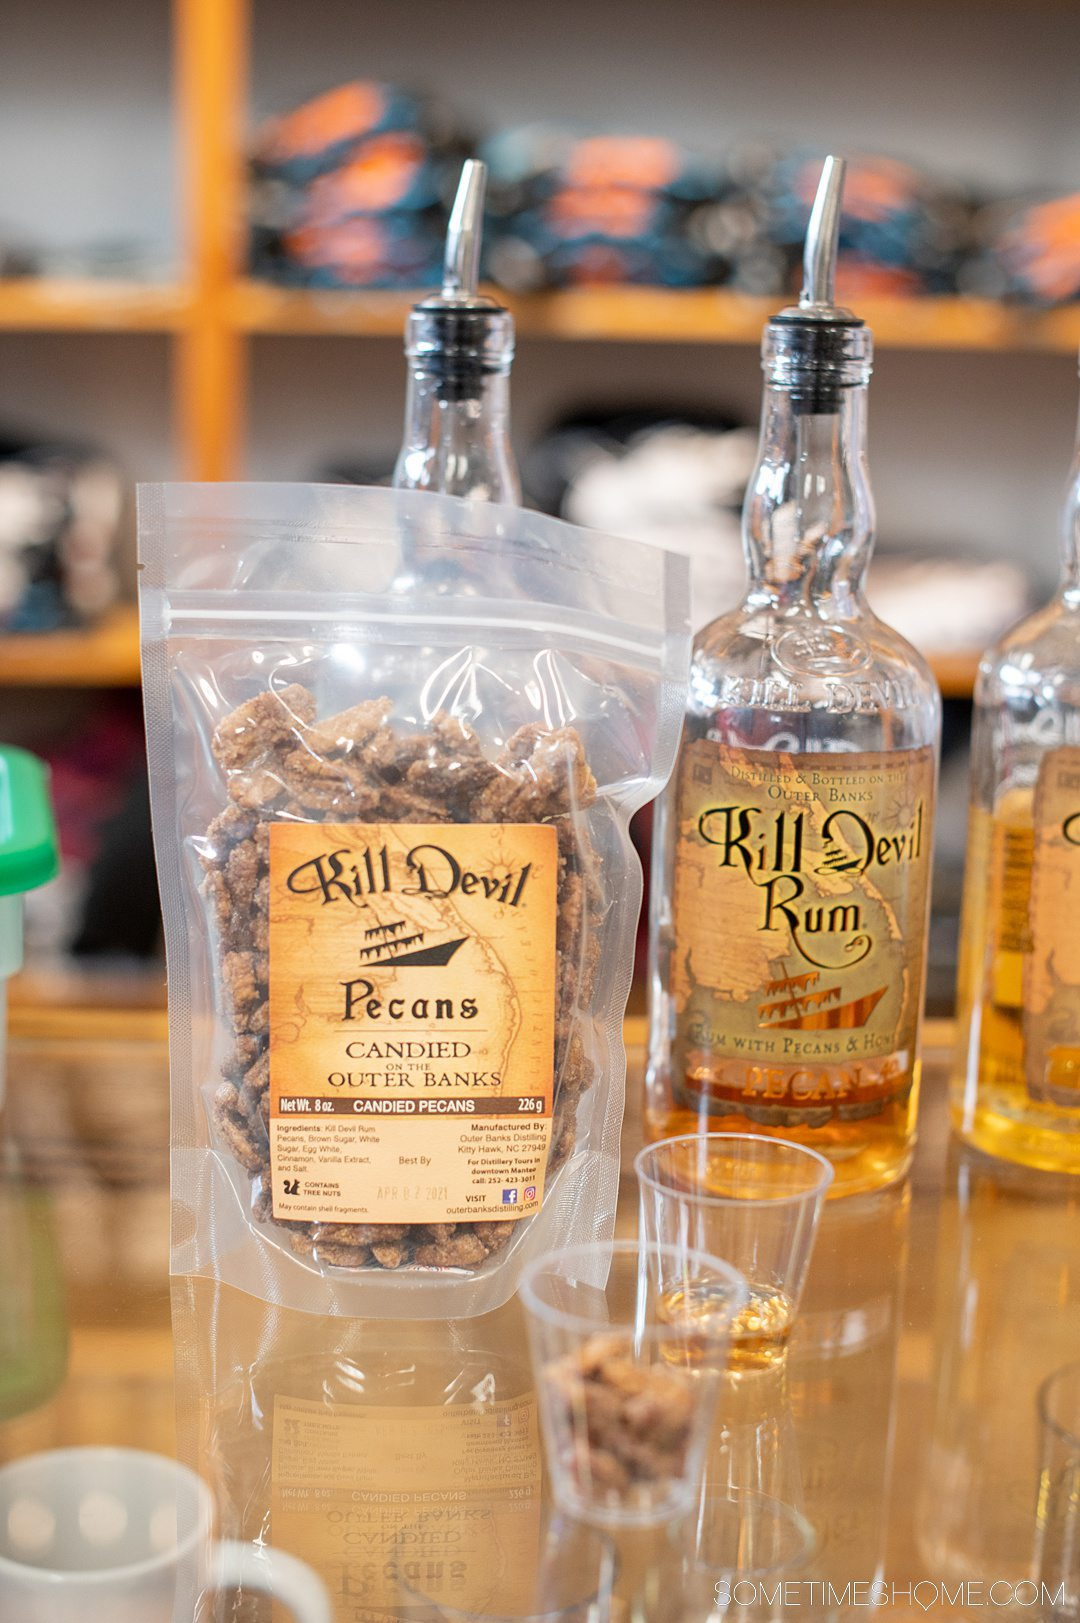 A bag of candied pecans next to a bottle of rum at Outer Banks Distilling in North Carolina.